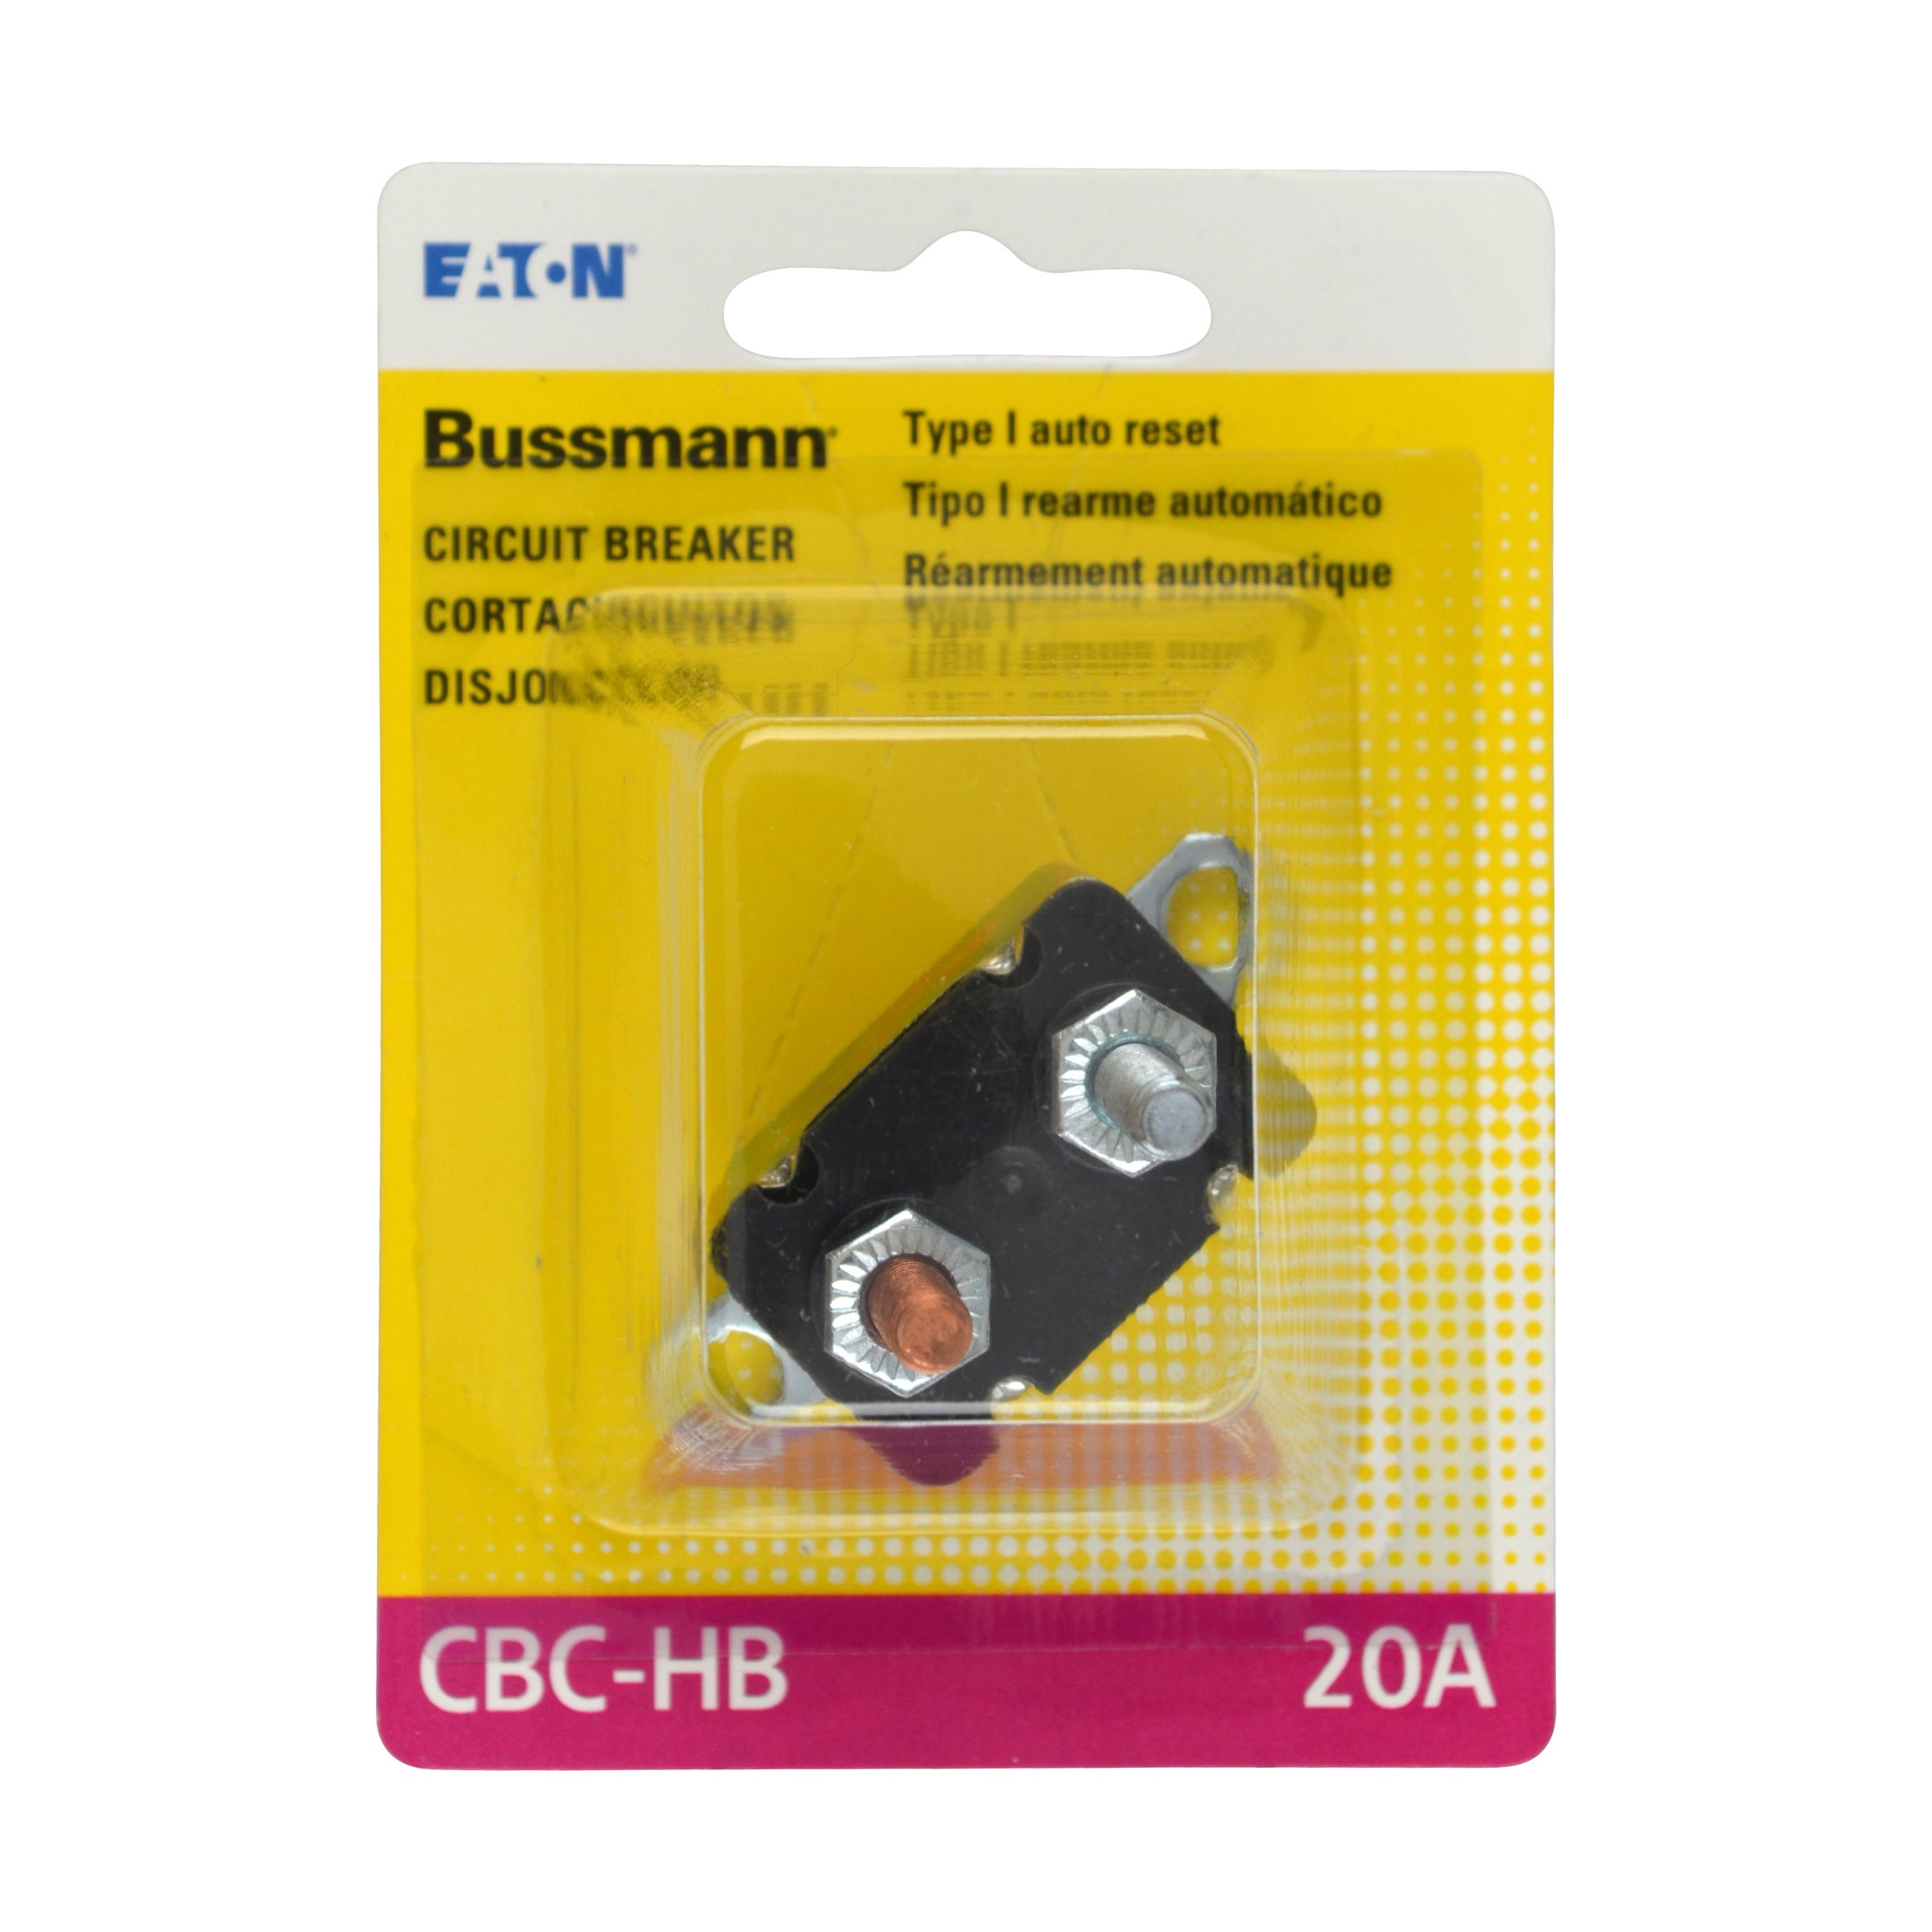 Best Rated In Automotive Replacement Circuit Breaker Switches Keeps Immediately Tripping After Reset Electrical Bussmann Bp Cbc 20hb Rp 20 Amp Type I Stud